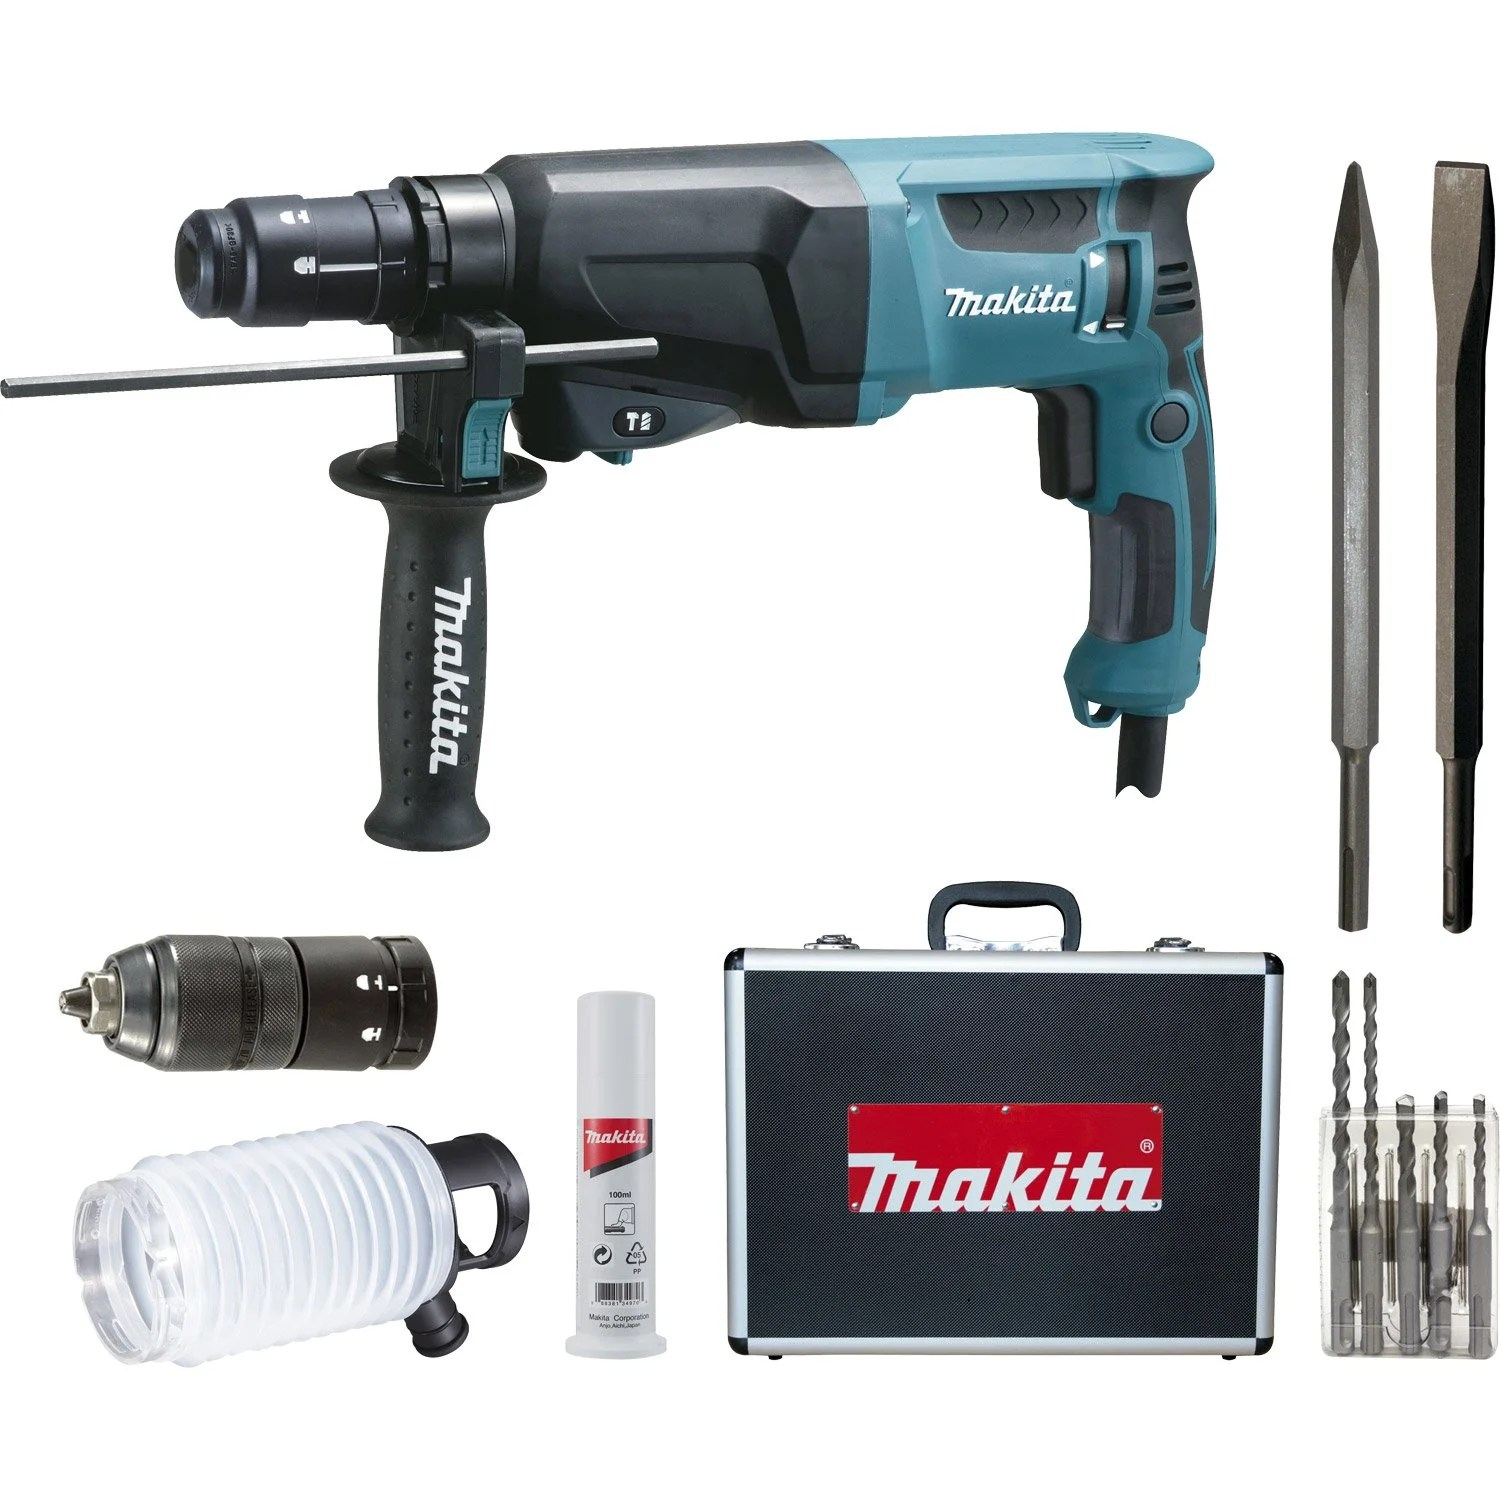 Perceuse Visseuse Leroy Merlin Marteau Perforateur Sds Plus Makita Hr2310tsp1 720 W